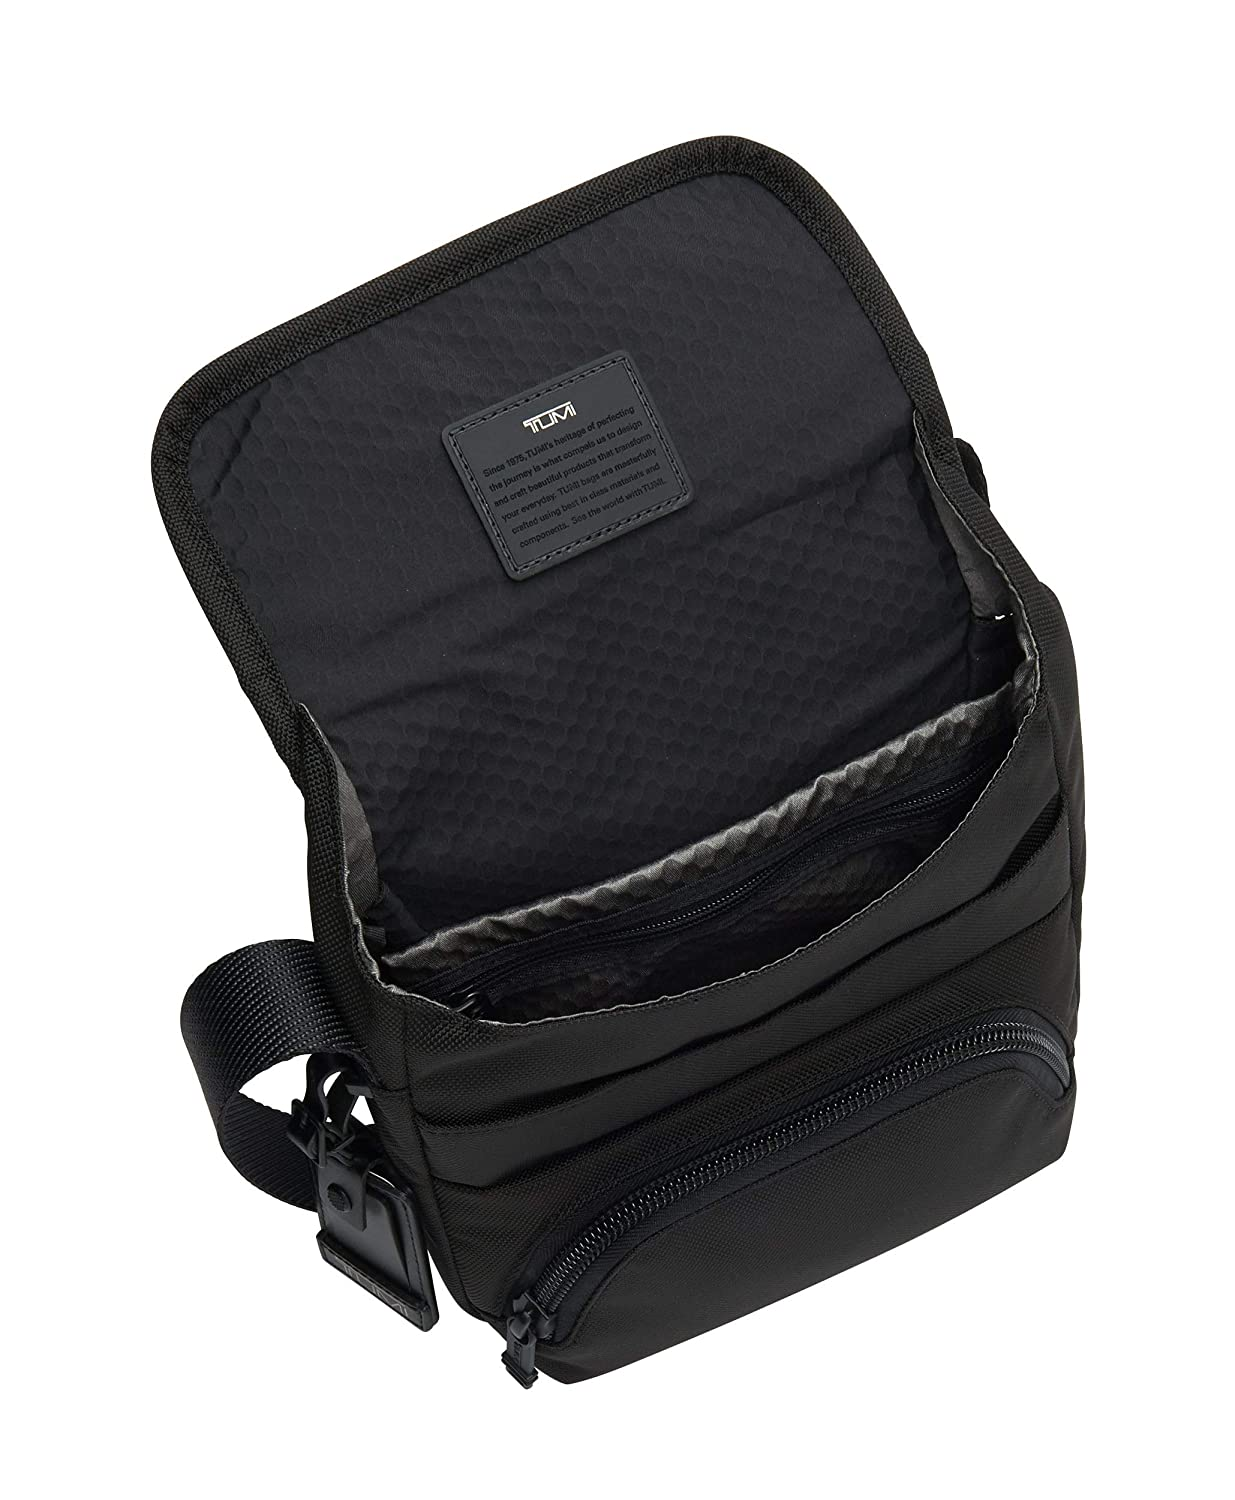 7d50bb594dc8 Amazon.com  TUMI - Alpha Bravo Barton Crossbody Bag - Satchel for Men and  Women - Black  iServe